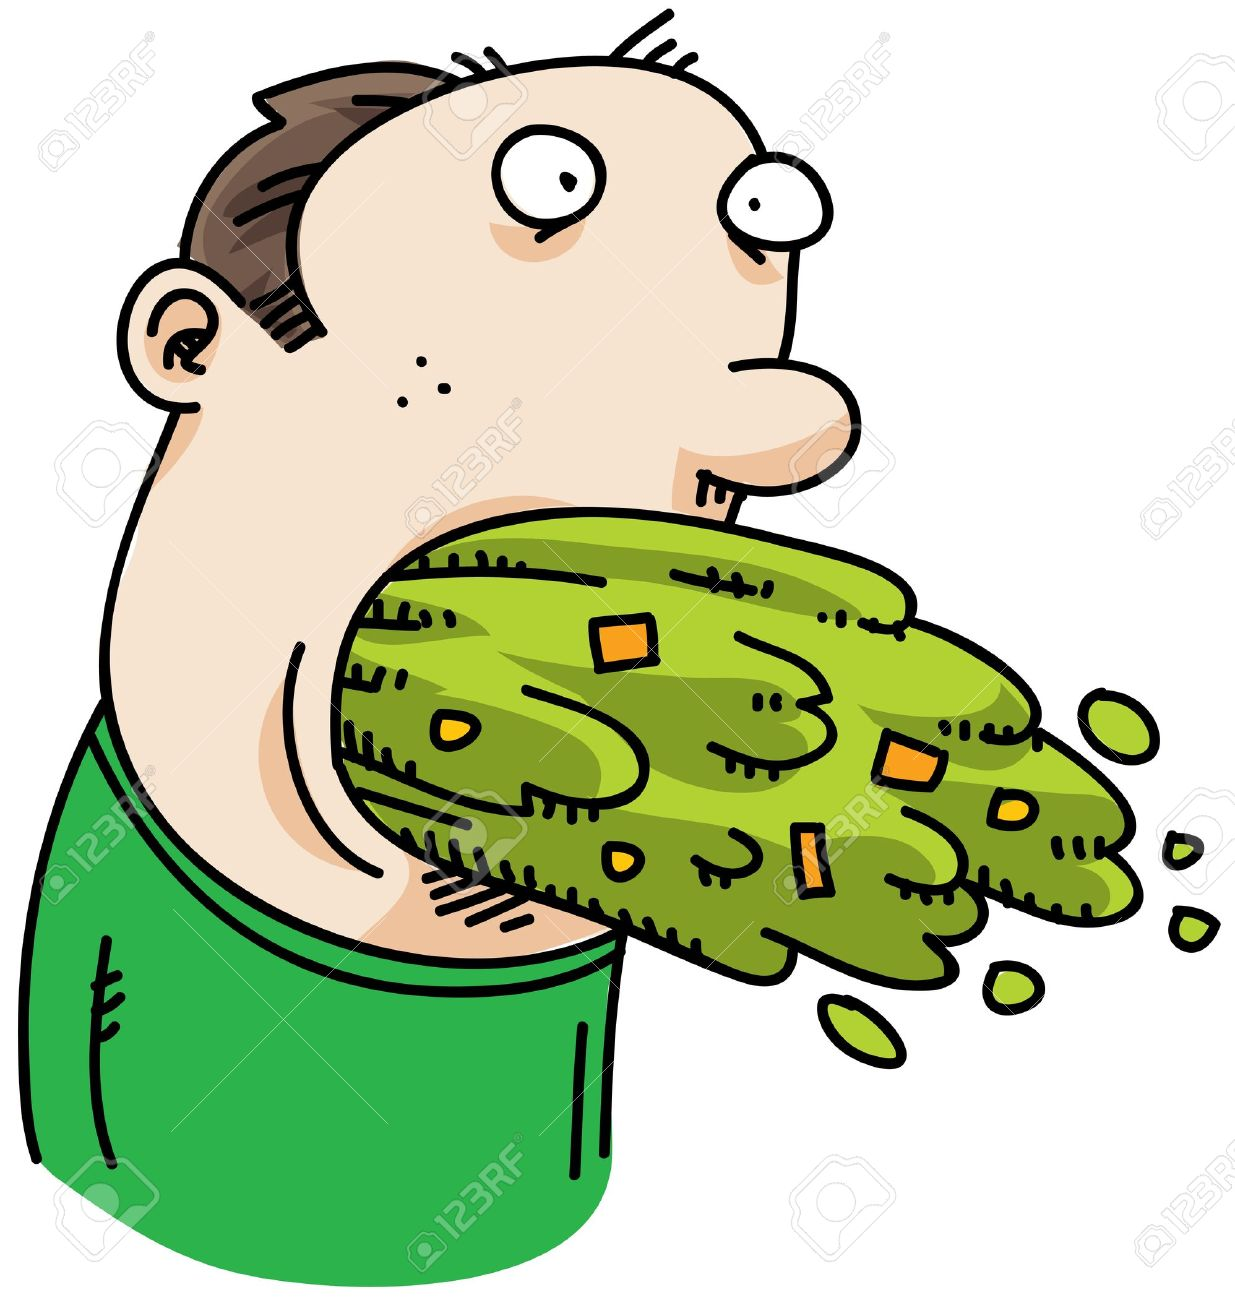 11431460-A-cartoon-man-with-a-mouth-full-of-vomit--Stock-Photo-cartoon-sick-person